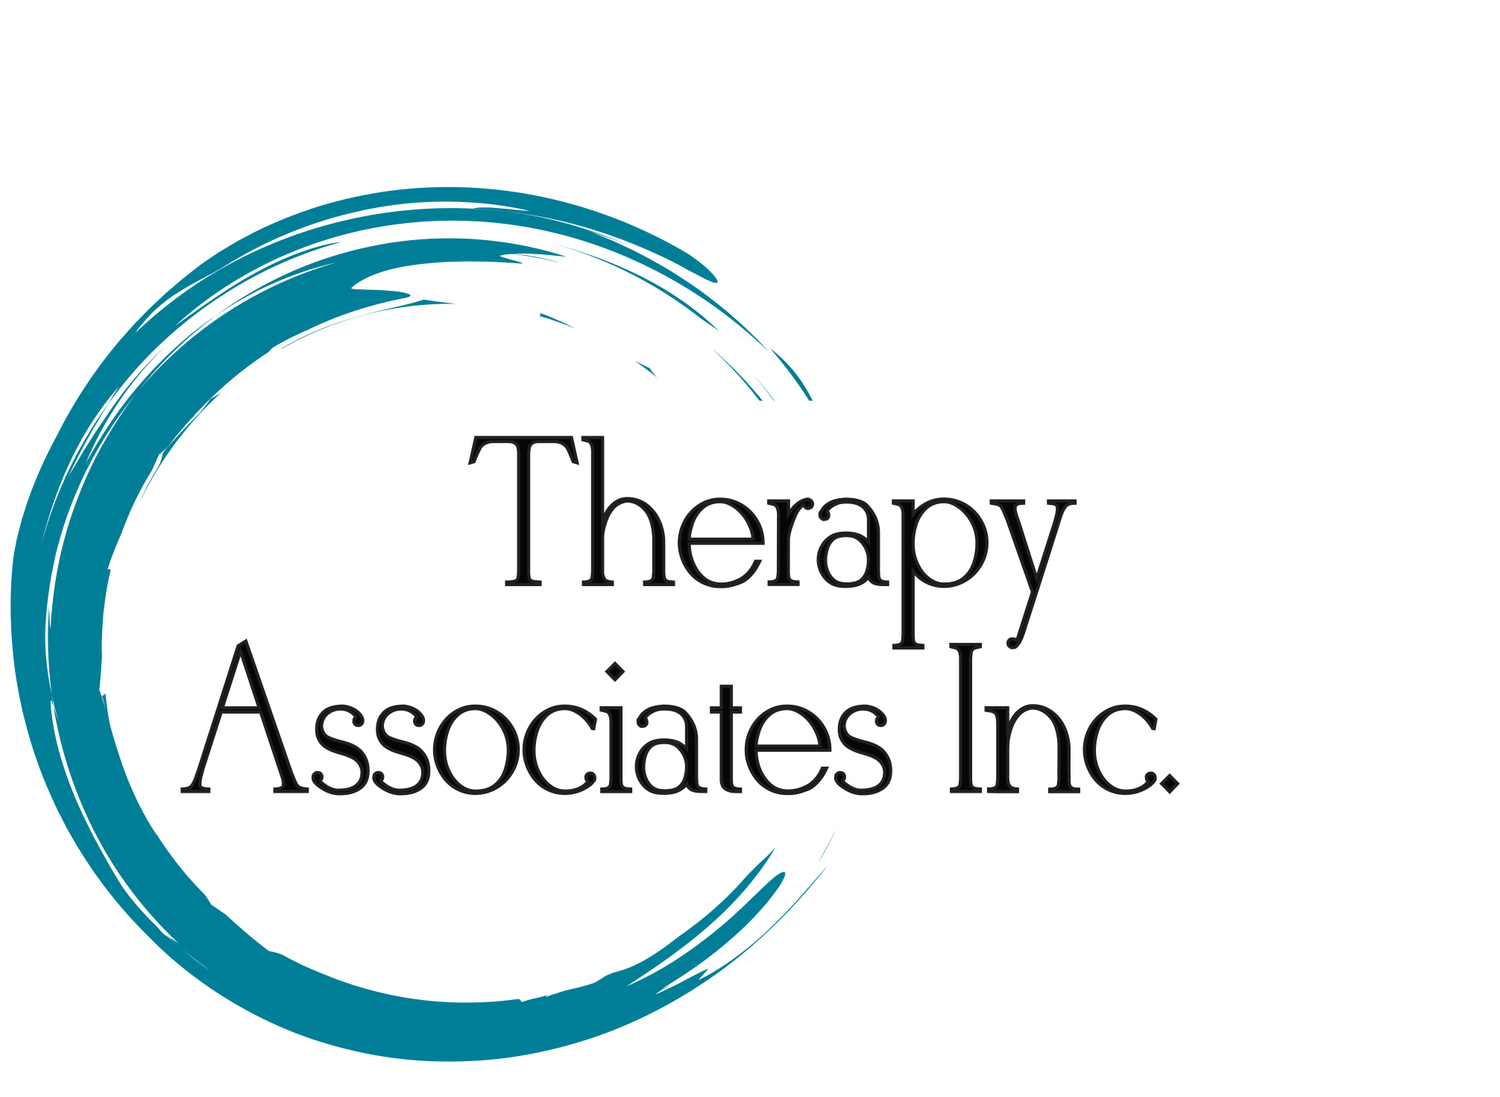 Therapy Associates Inc.